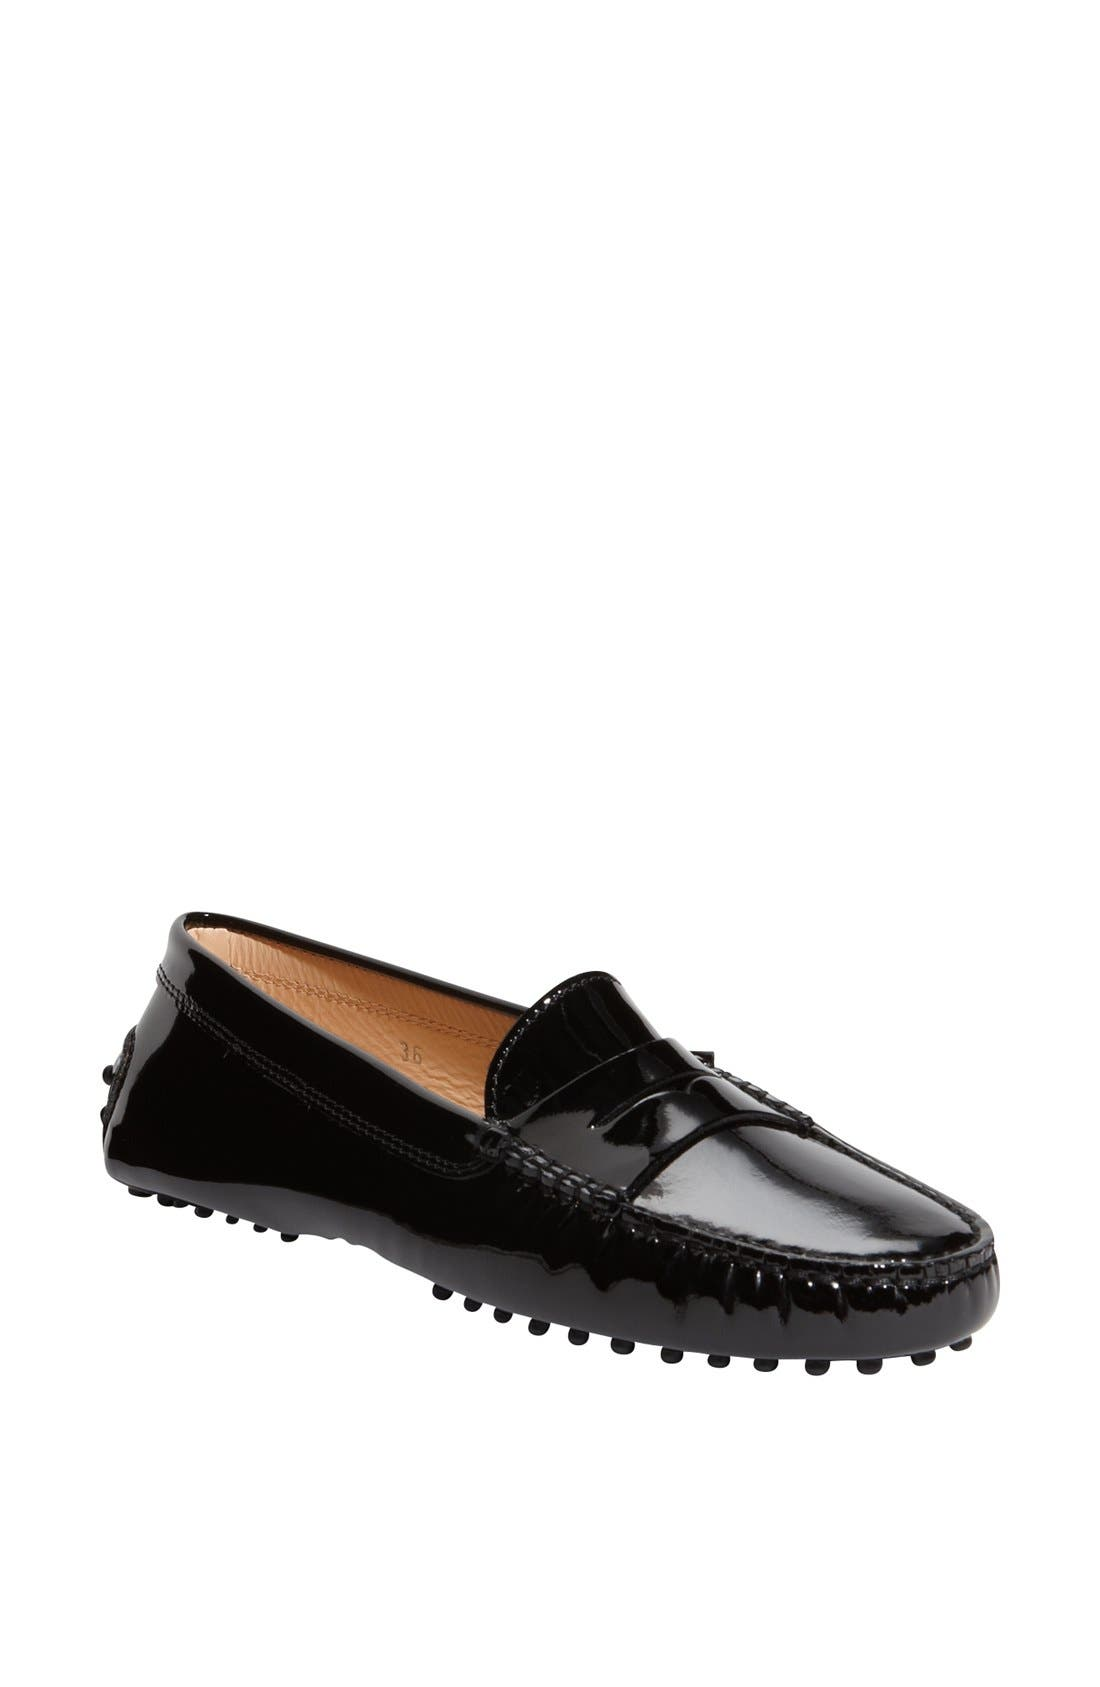 Alternate Image 1 Selected - Tod's 'Gommini' Moccasin (Women)